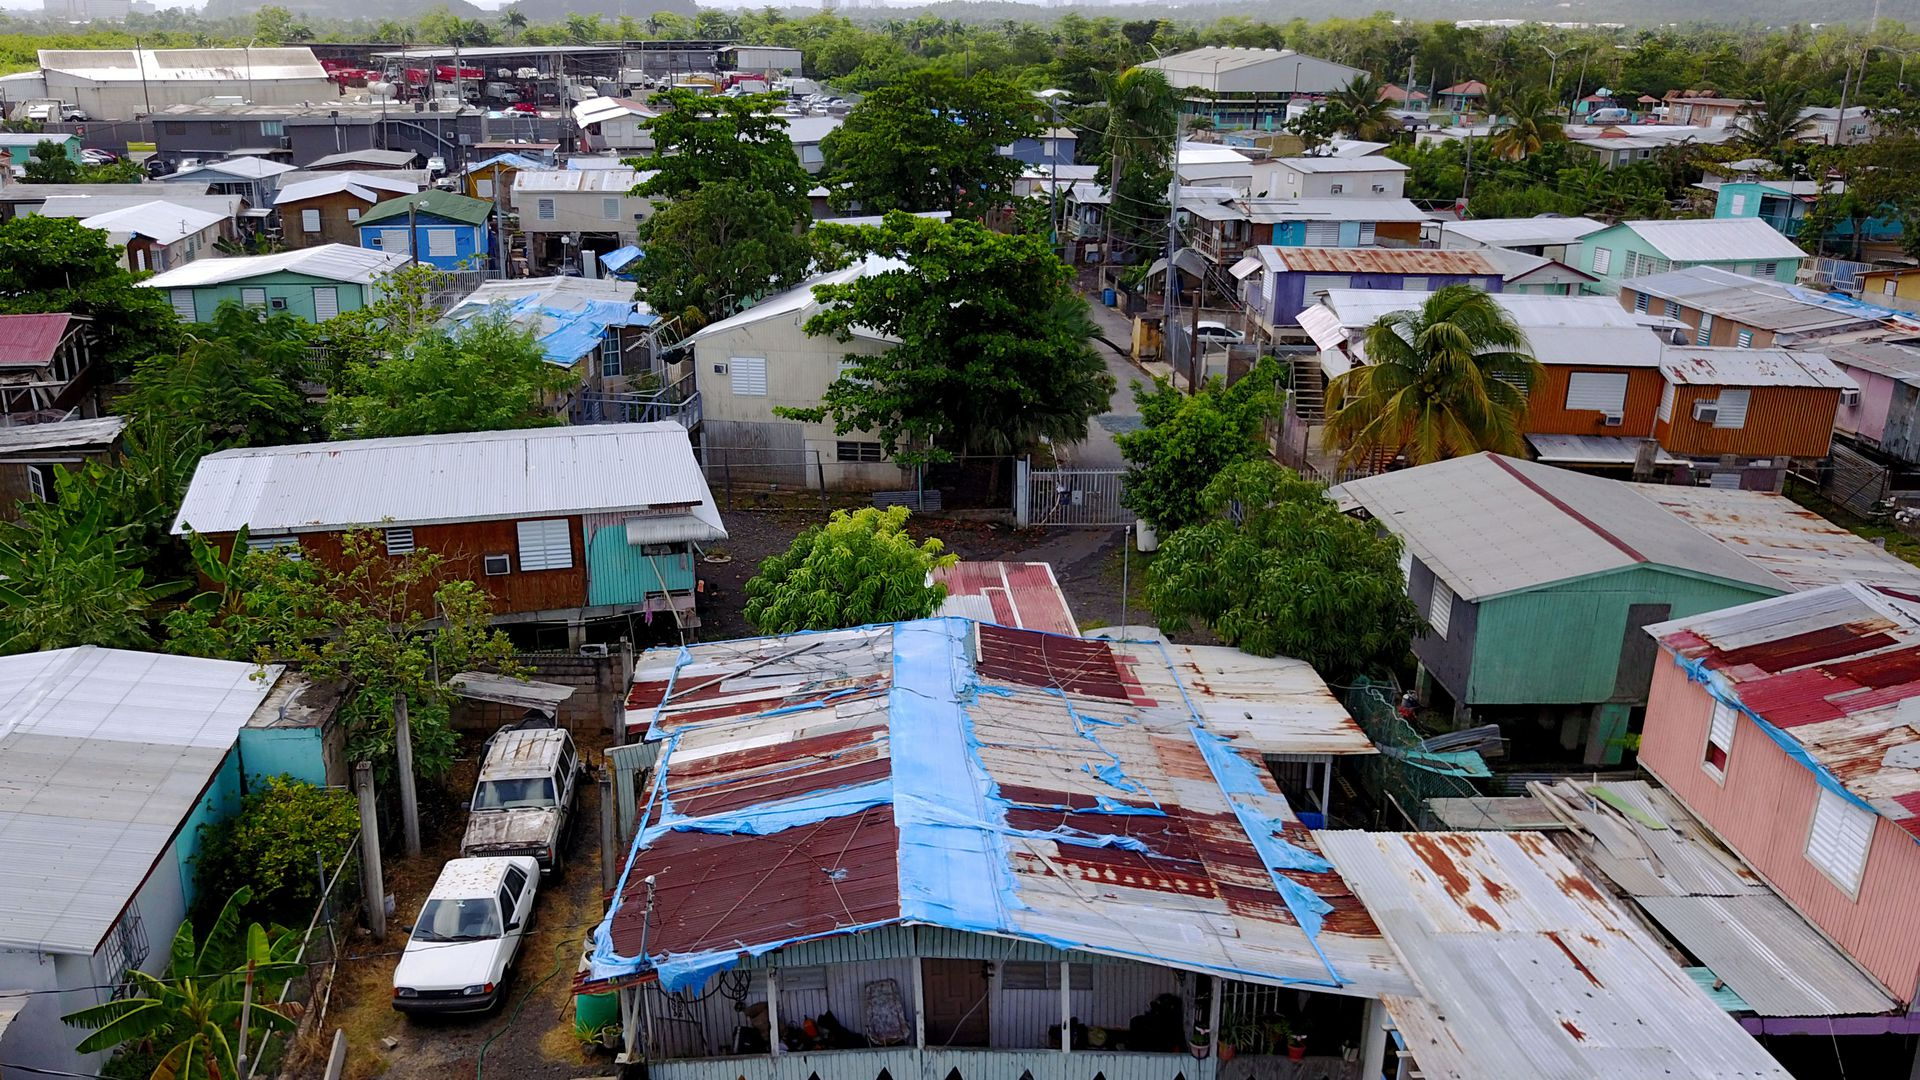 The blue tarp that was used to protect the roof damaged by Hurricane Maria two years ago is showing wear and tear in San Juan, Puerto Rico, September 18